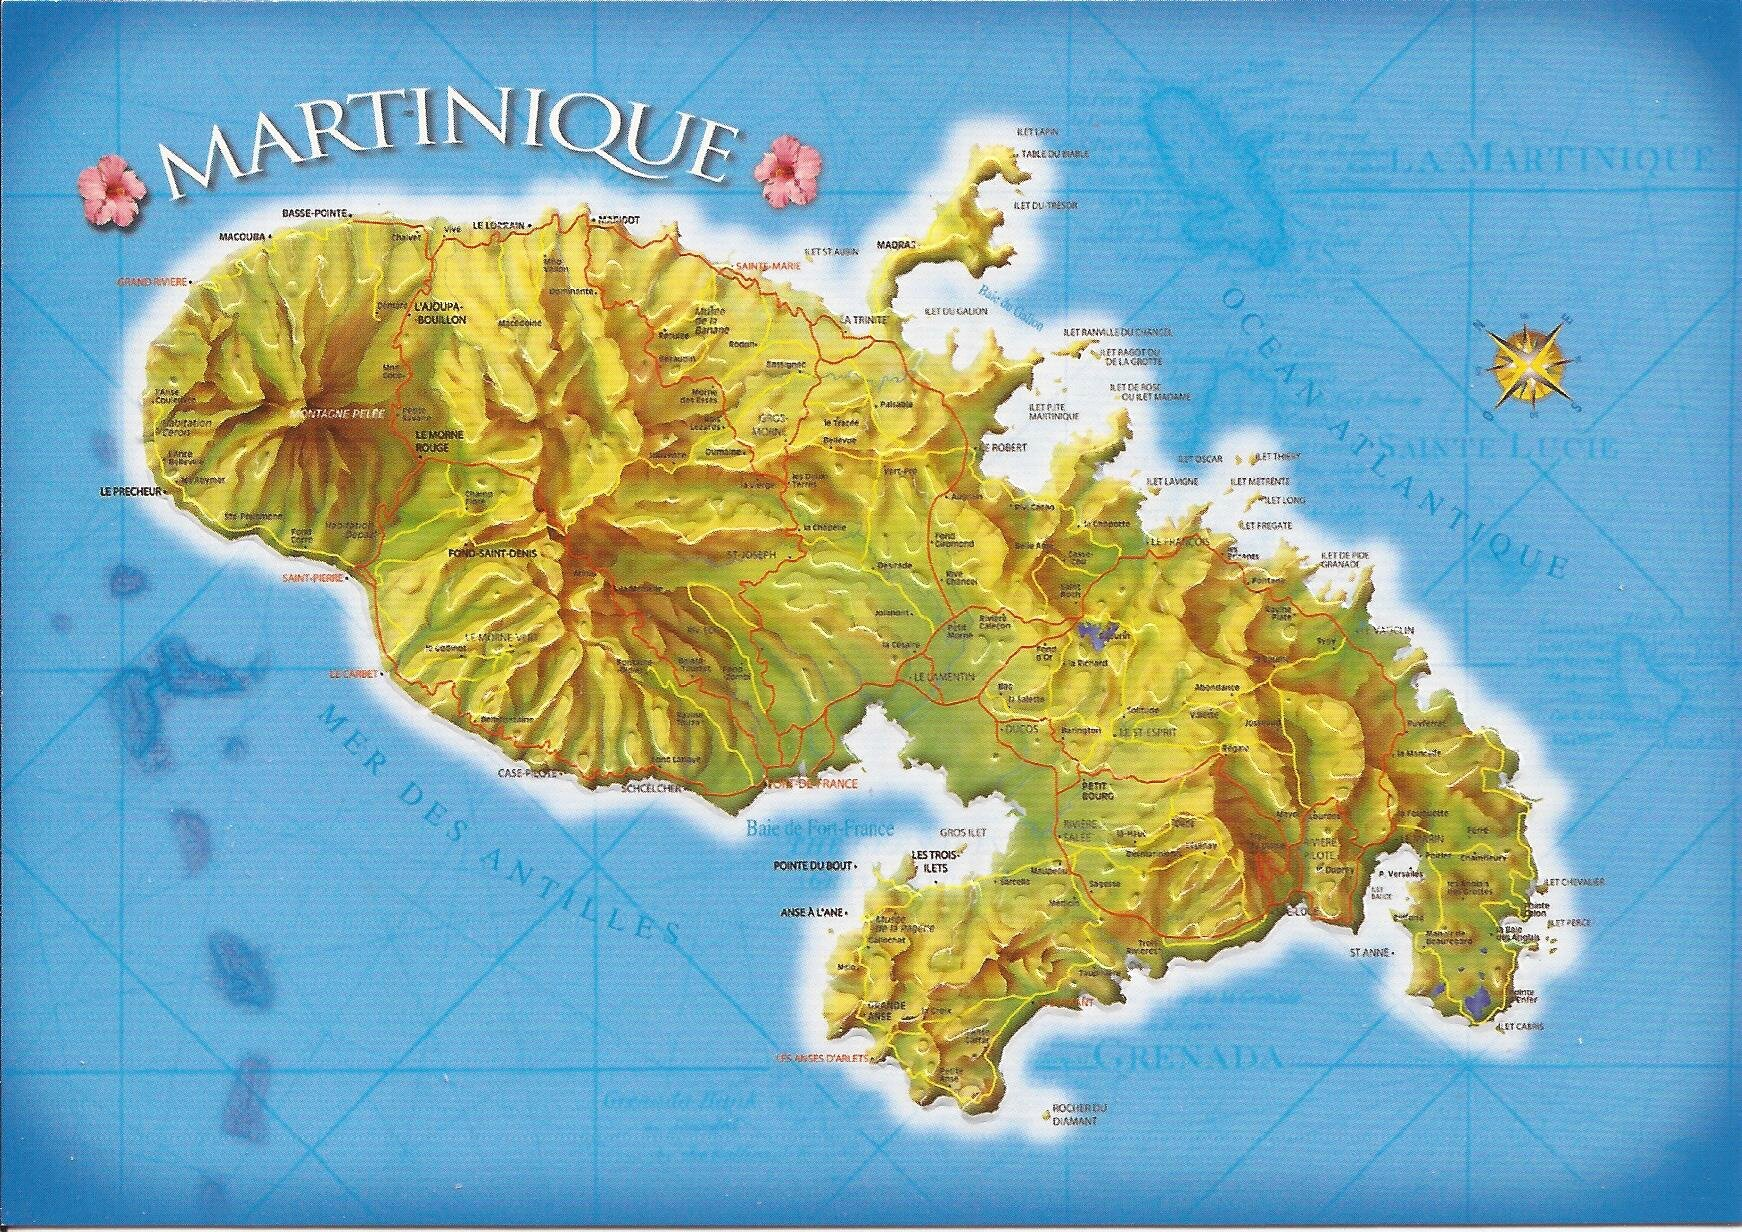 972 martinique''''''